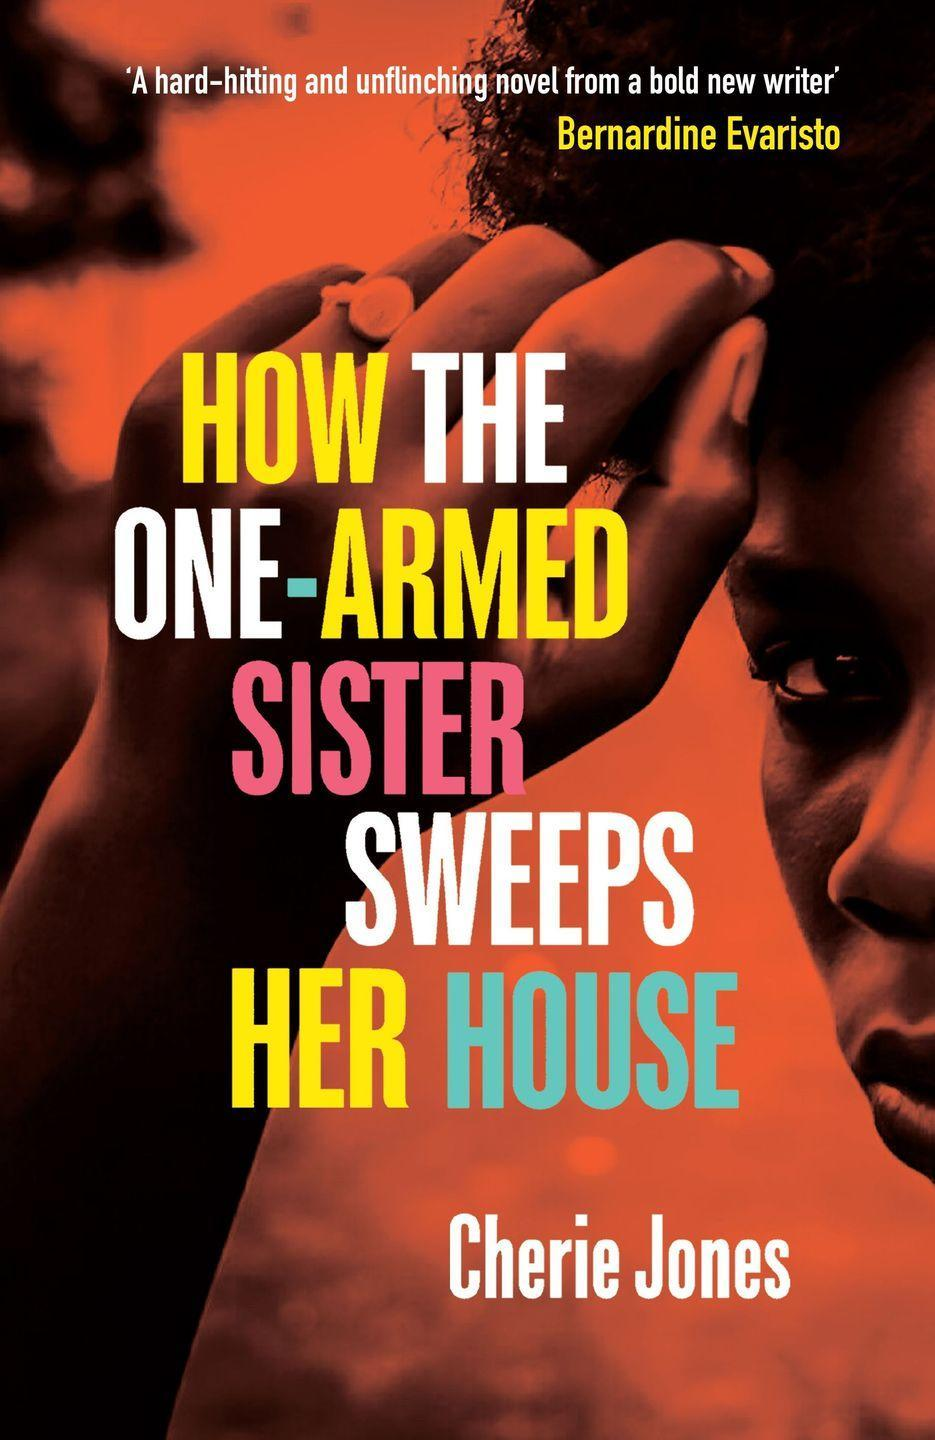 """<p>A gorgeous and powerful debut which tells the tale of three marriages and one lingering childhood myth, all set on the beautiful island of Barbados. </p><p>""""How the One-Armed Sister Sweeps Her House by Cherie Jones<br>is a tale of violence, loss and love in Barbados, seen through four very vivid voices."""" - Elizabeth Day.</p><p><a class=""""link rapid-noclick-resp"""" href=""""https://www.amazon.co.uk/One-Armed-Sister-Sweeps-House-heart-wrenching-ebook/dp/B087JFHJKT?tag=hearstuk-yahoo-21&ascsubtag=%5Bartid%7C1927.g.35797924%5Bsrc%7Cyahoo-uk"""" rel=""""nofollow noopener"""" target=""""_blank"""" data-ylk=""""slk:SHOP NOW"""">SHOP NOW</a></p>"""